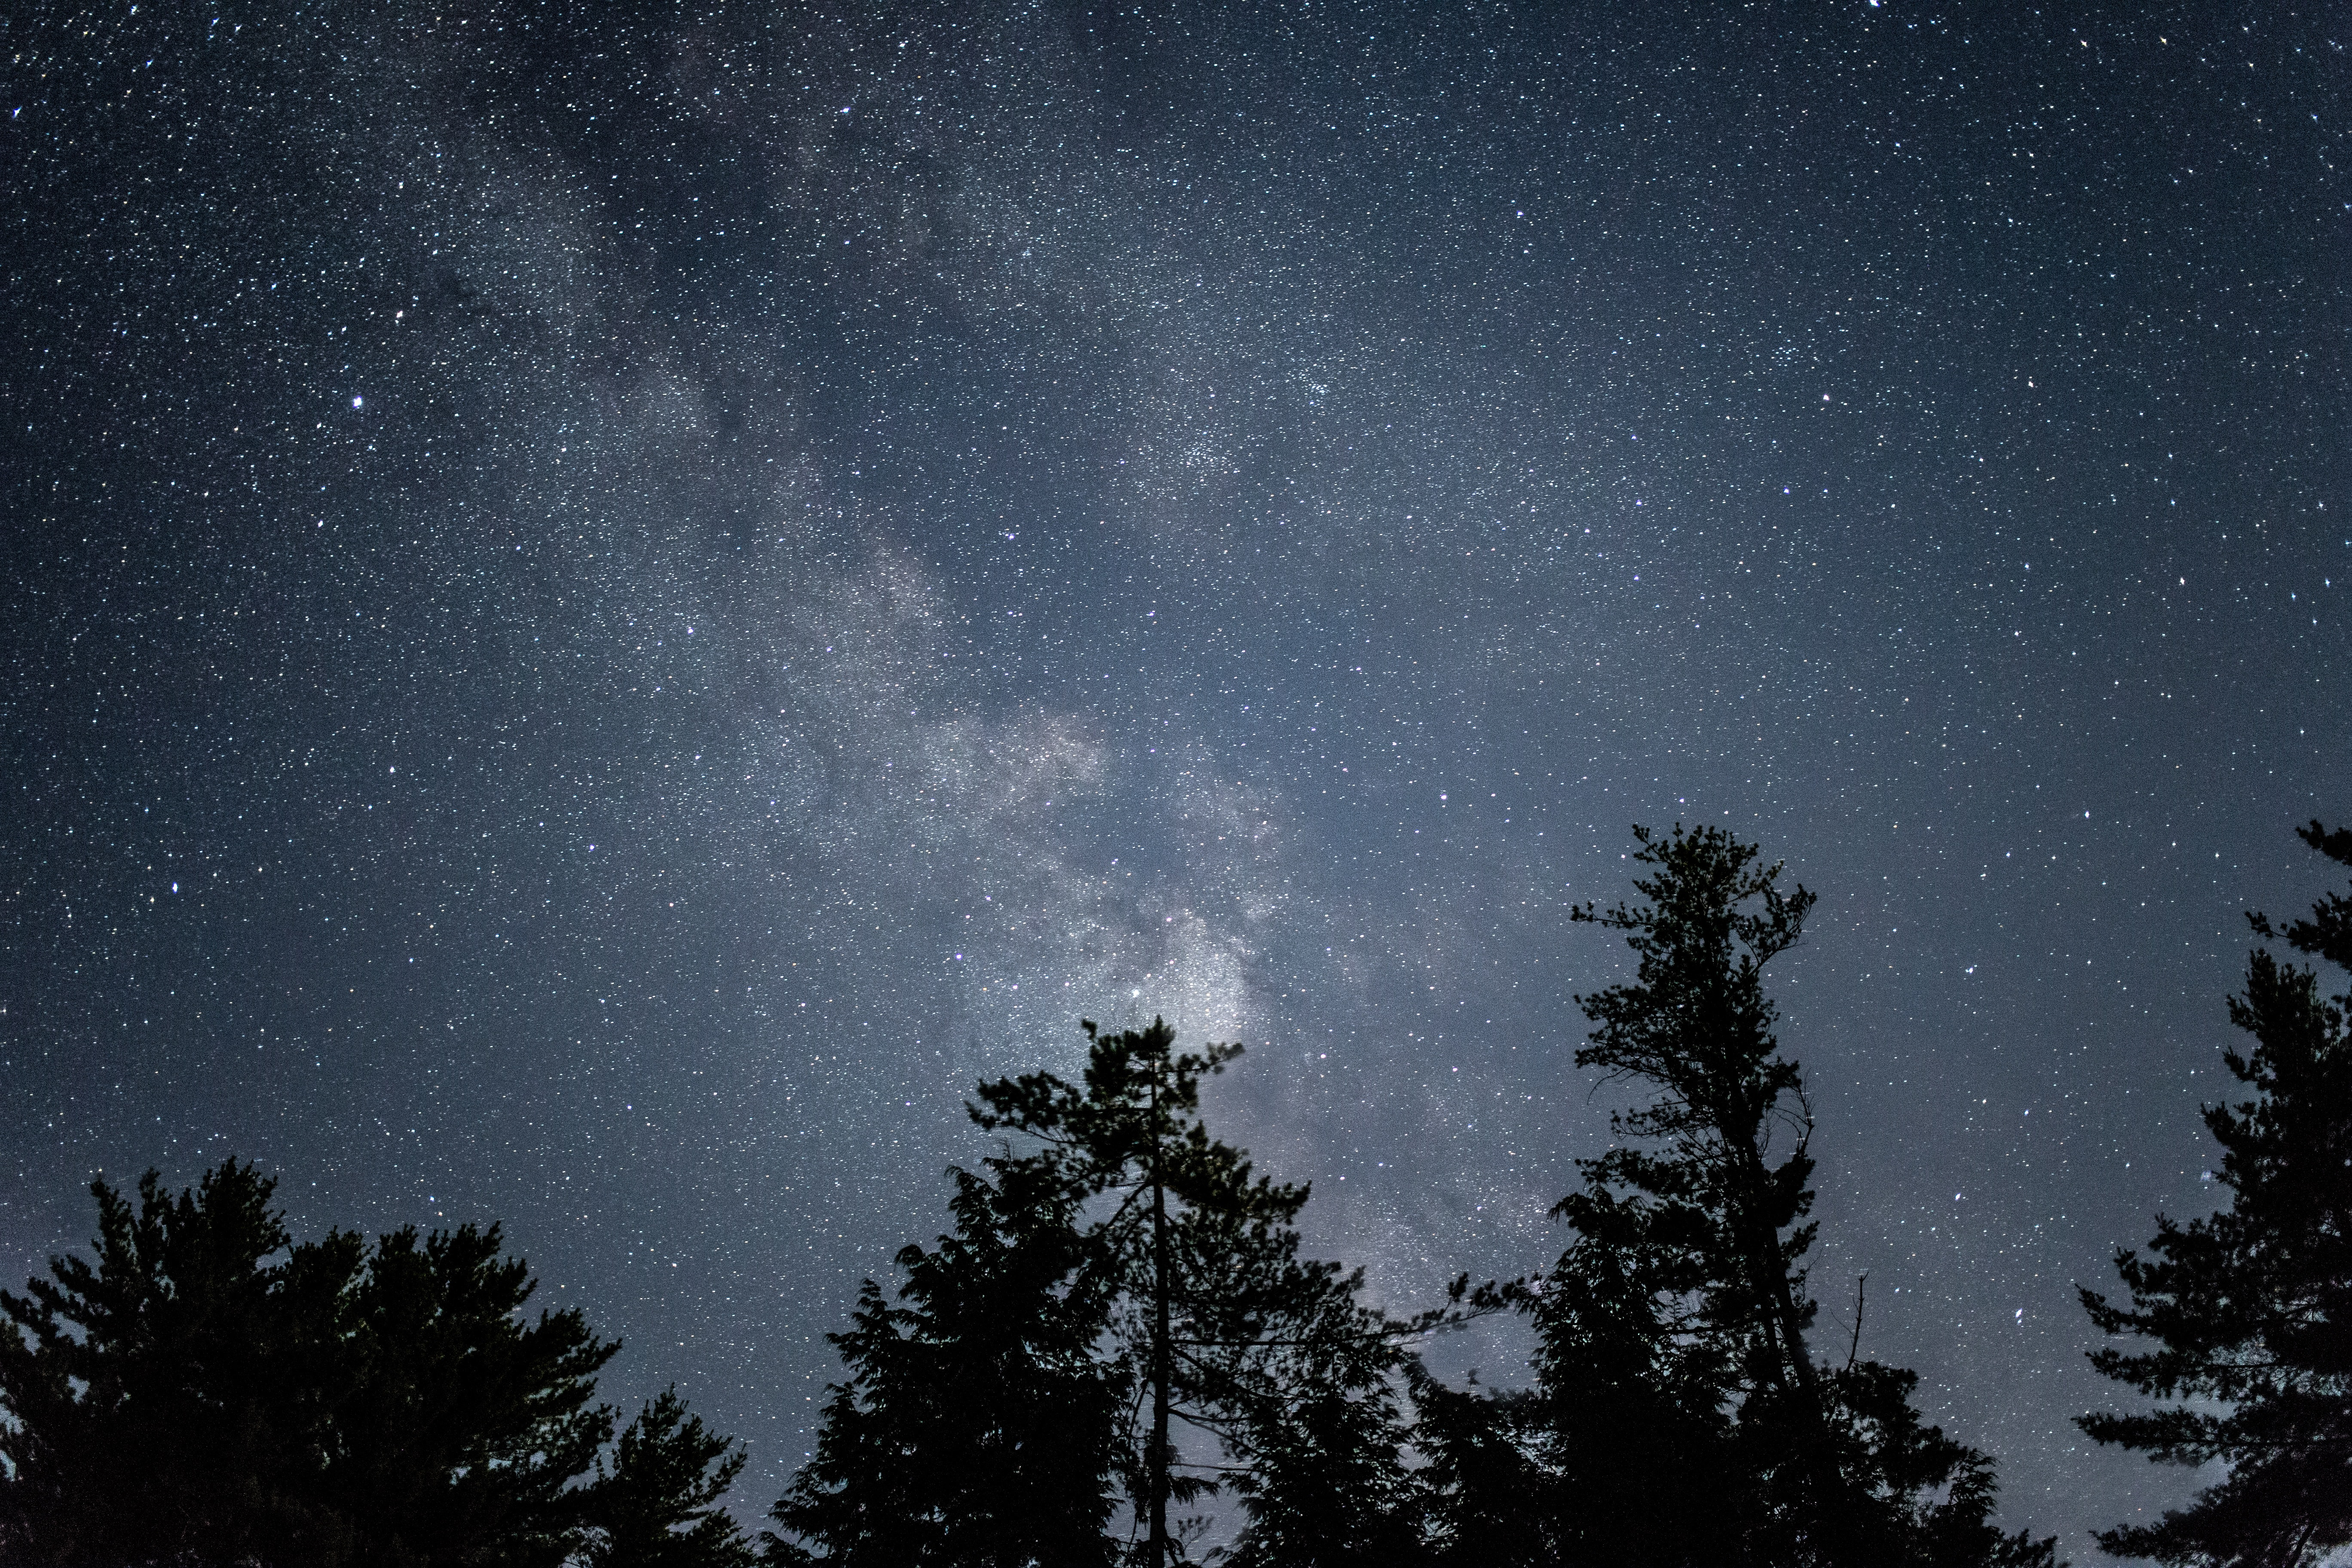 Tall trees silhouetted against a star studded night and the Milky Way